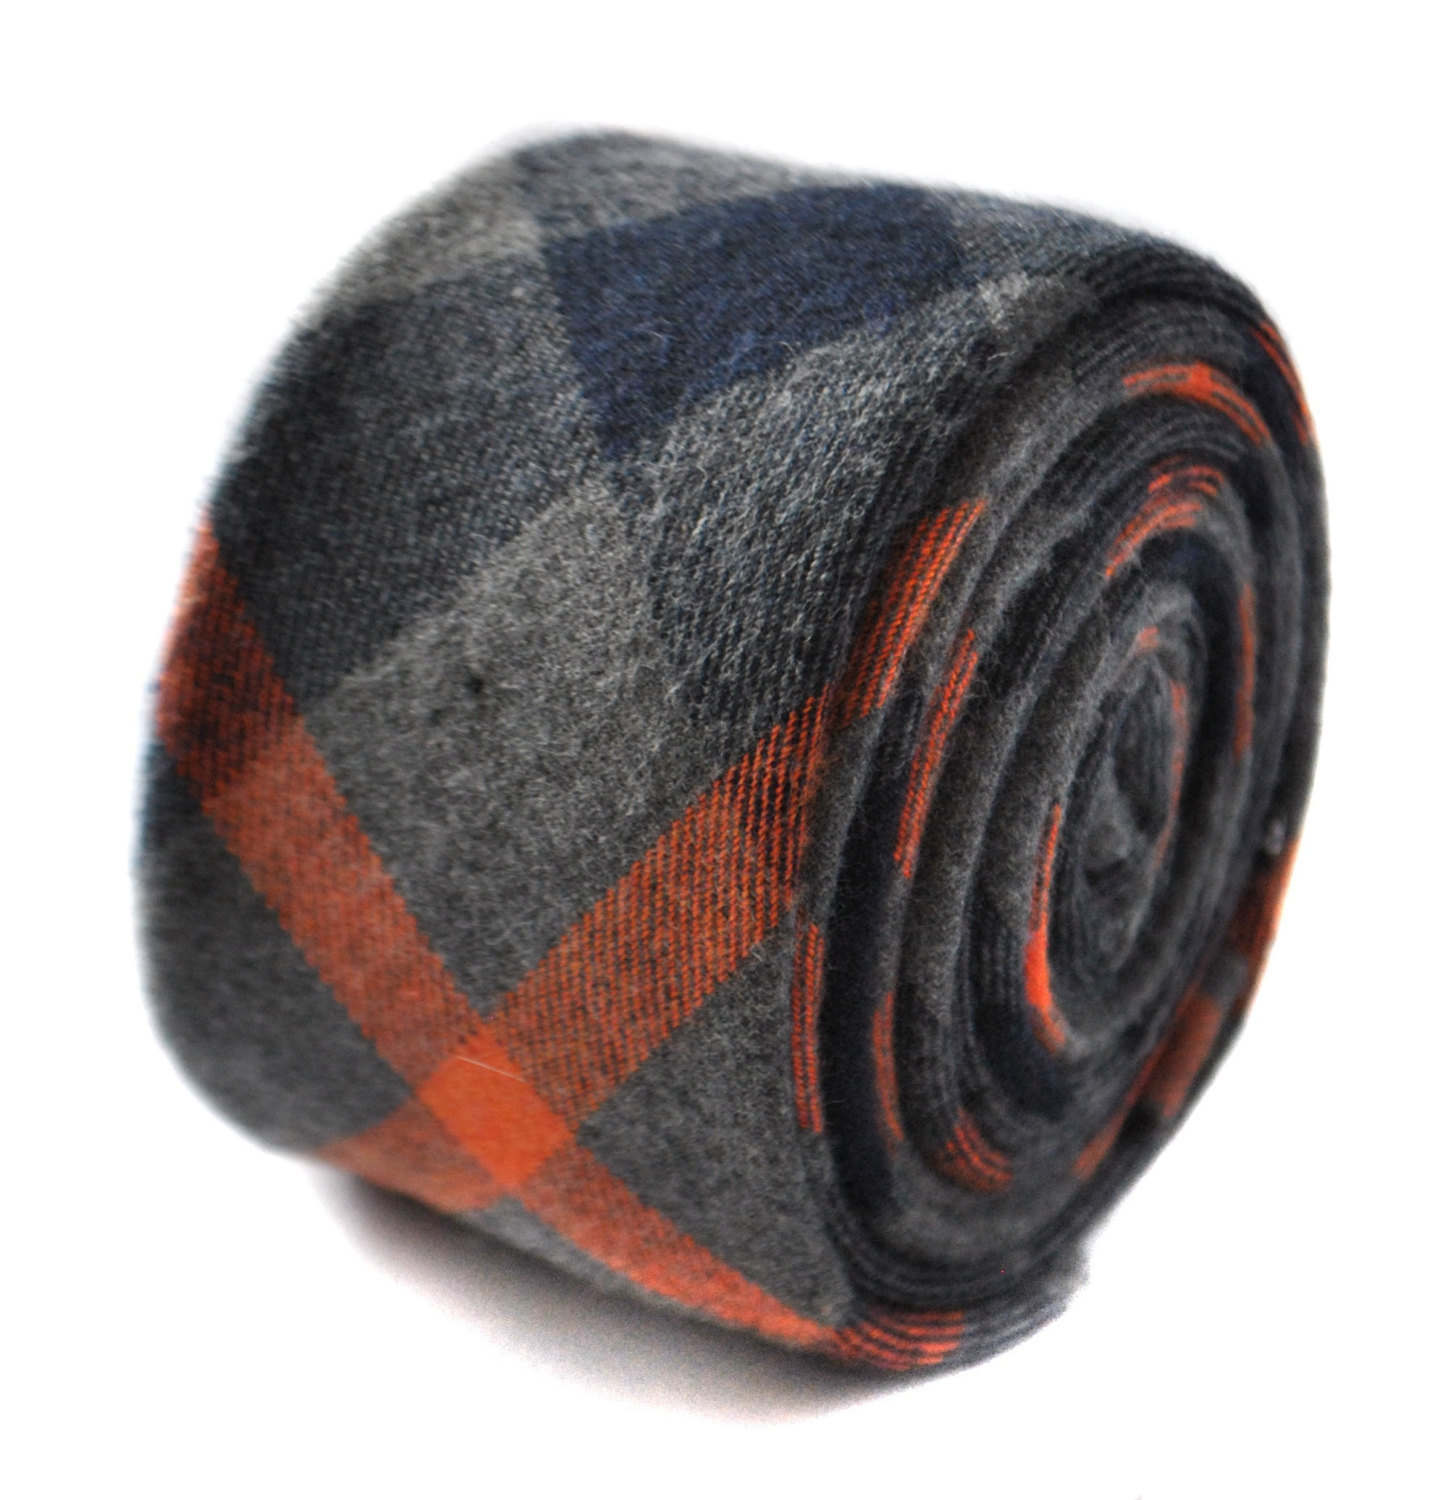 orange and grey wool check plaid style tie by Frederick Thomas FT1817